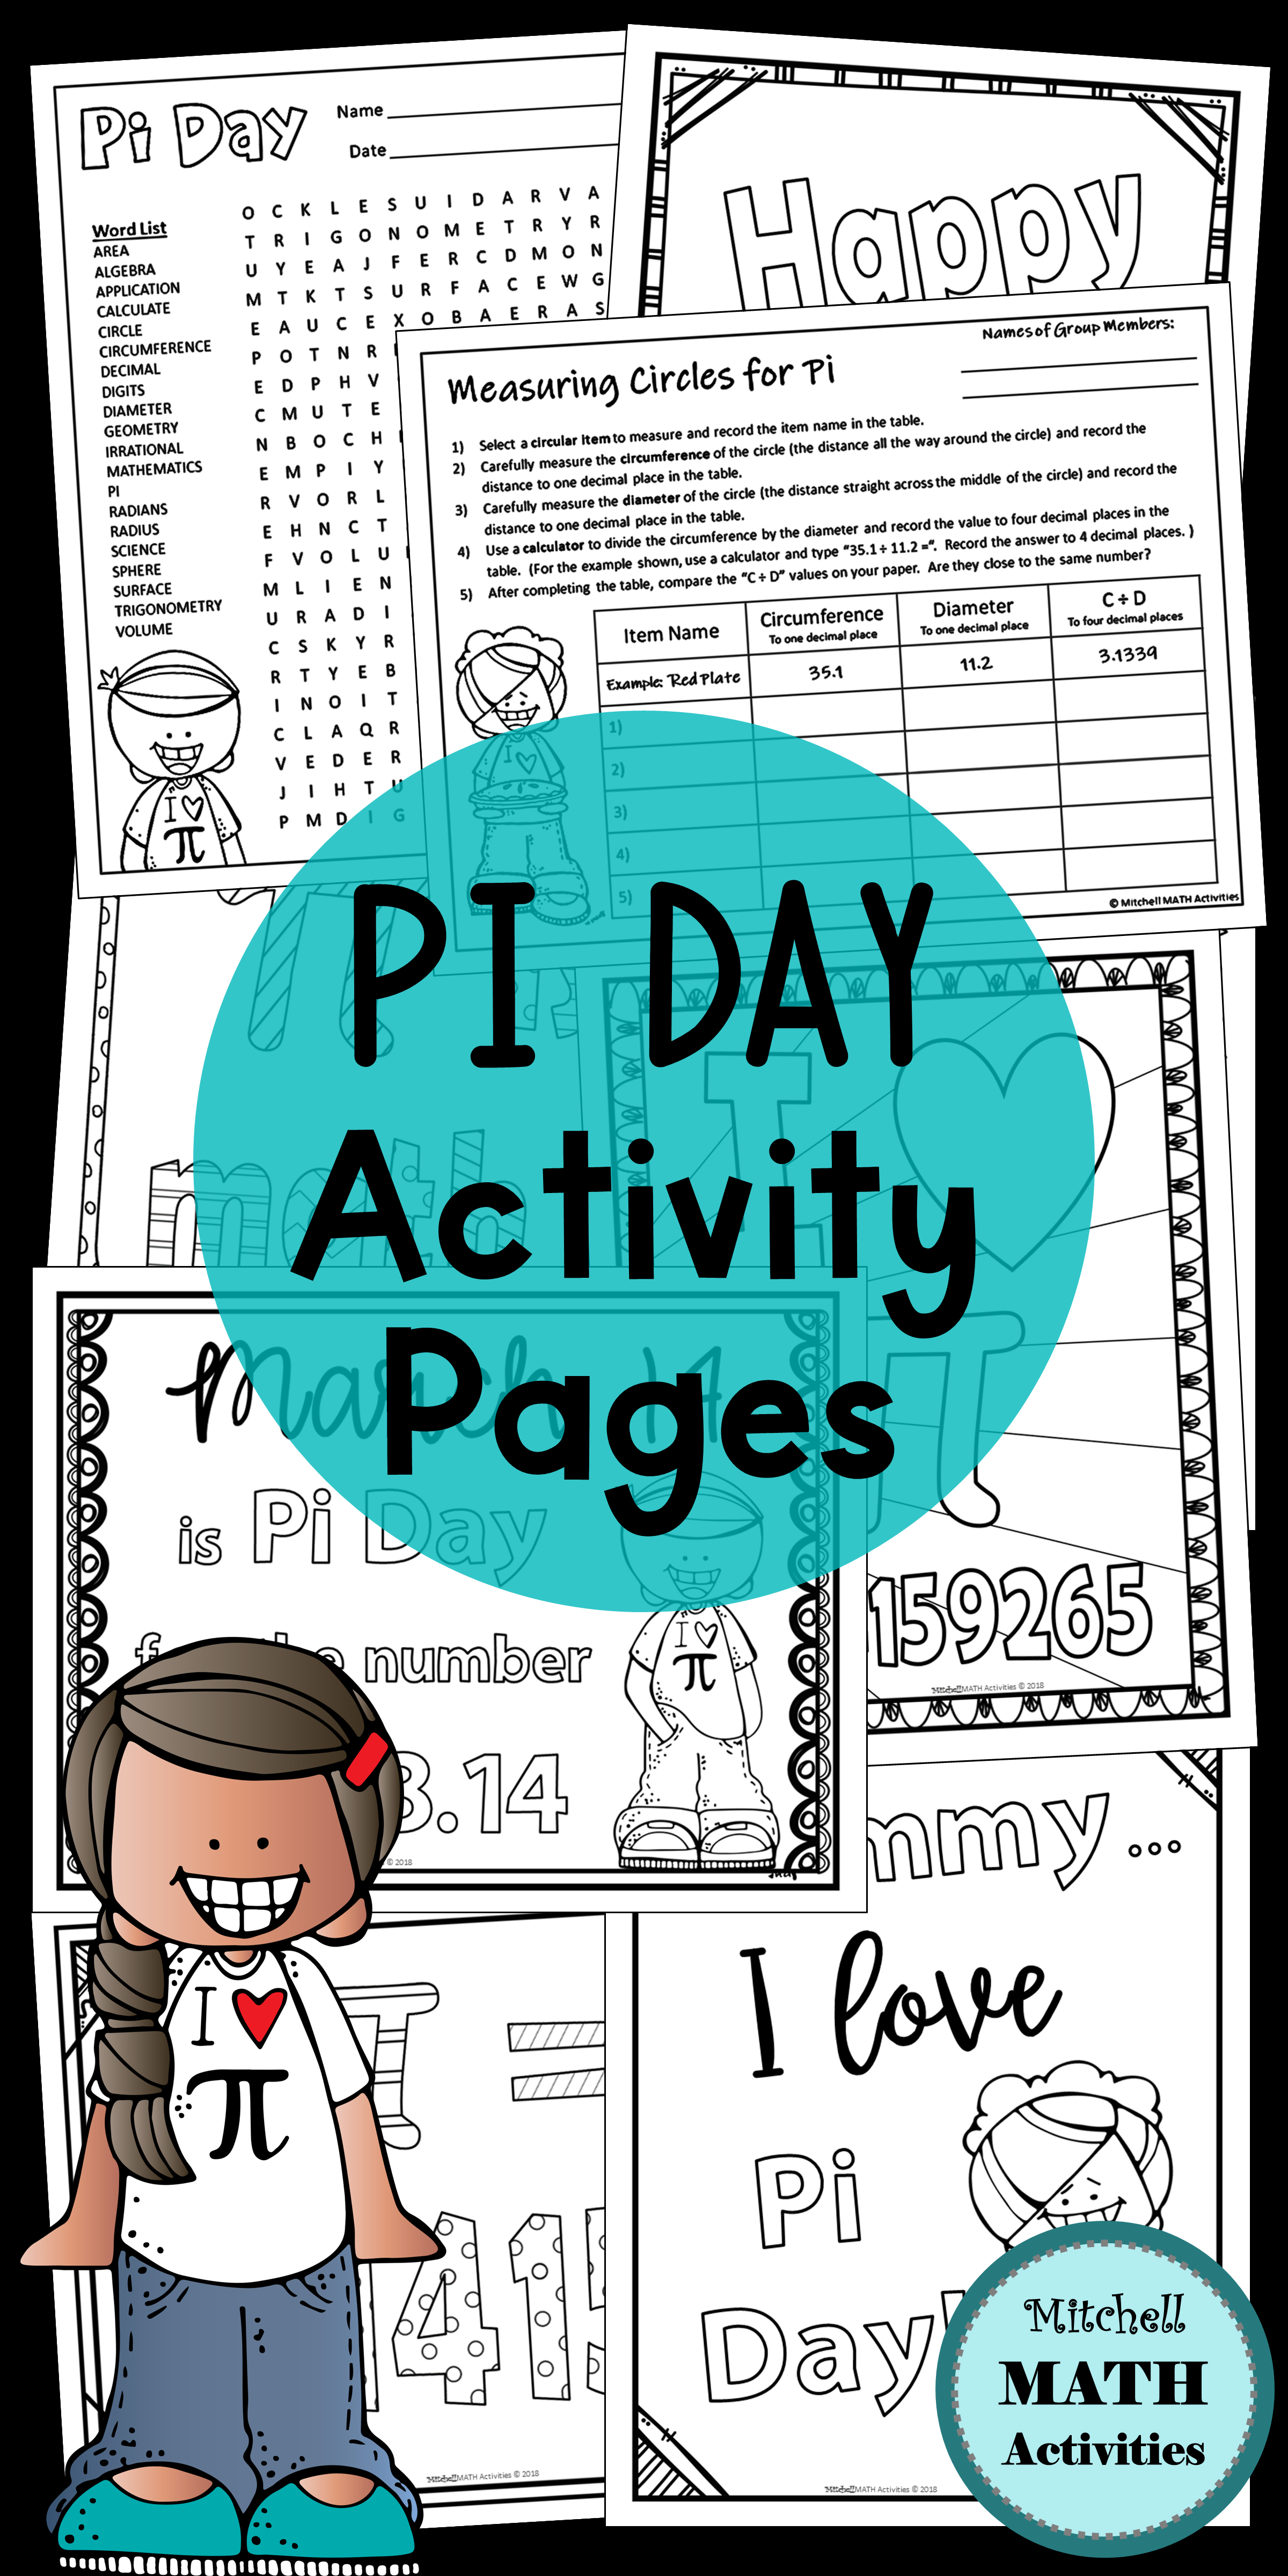 Pi Day Coloring Pages And Measuring Activity Measurement Activities Math Activities Coloring Pages [ 4800 x 2400 Pixel ]